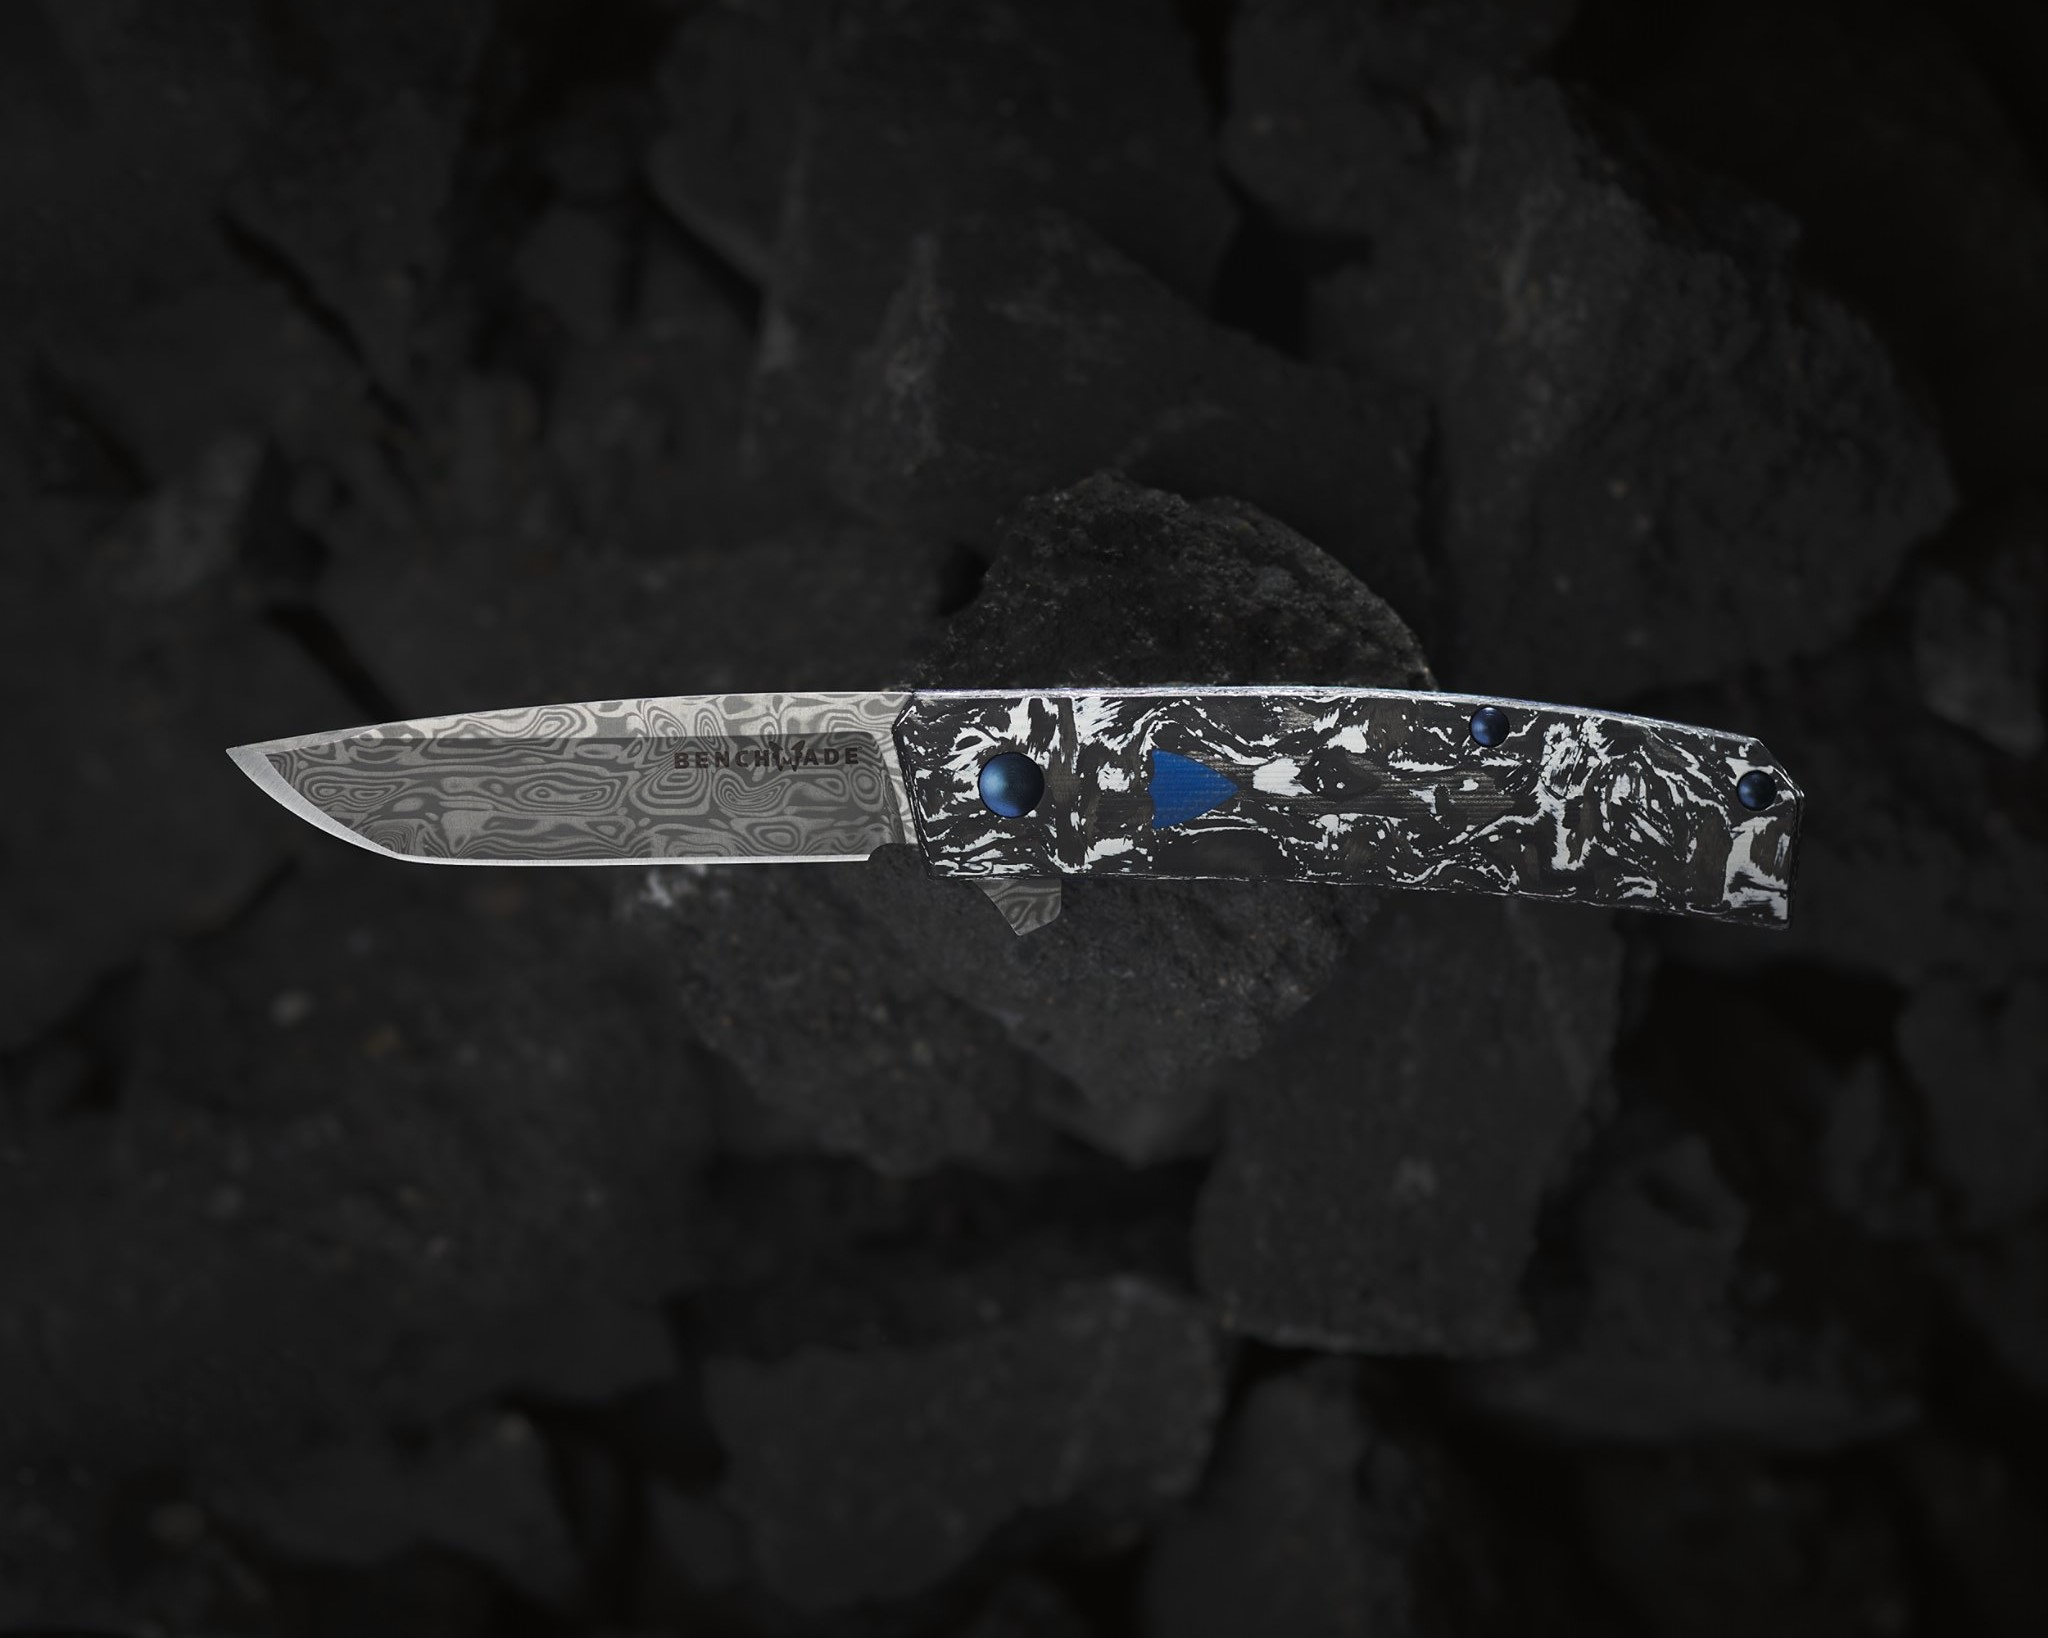 BENCHMADE KNIFE COMPANY RELEASES THE 601-211 TENGU FLIPPER KNIFE